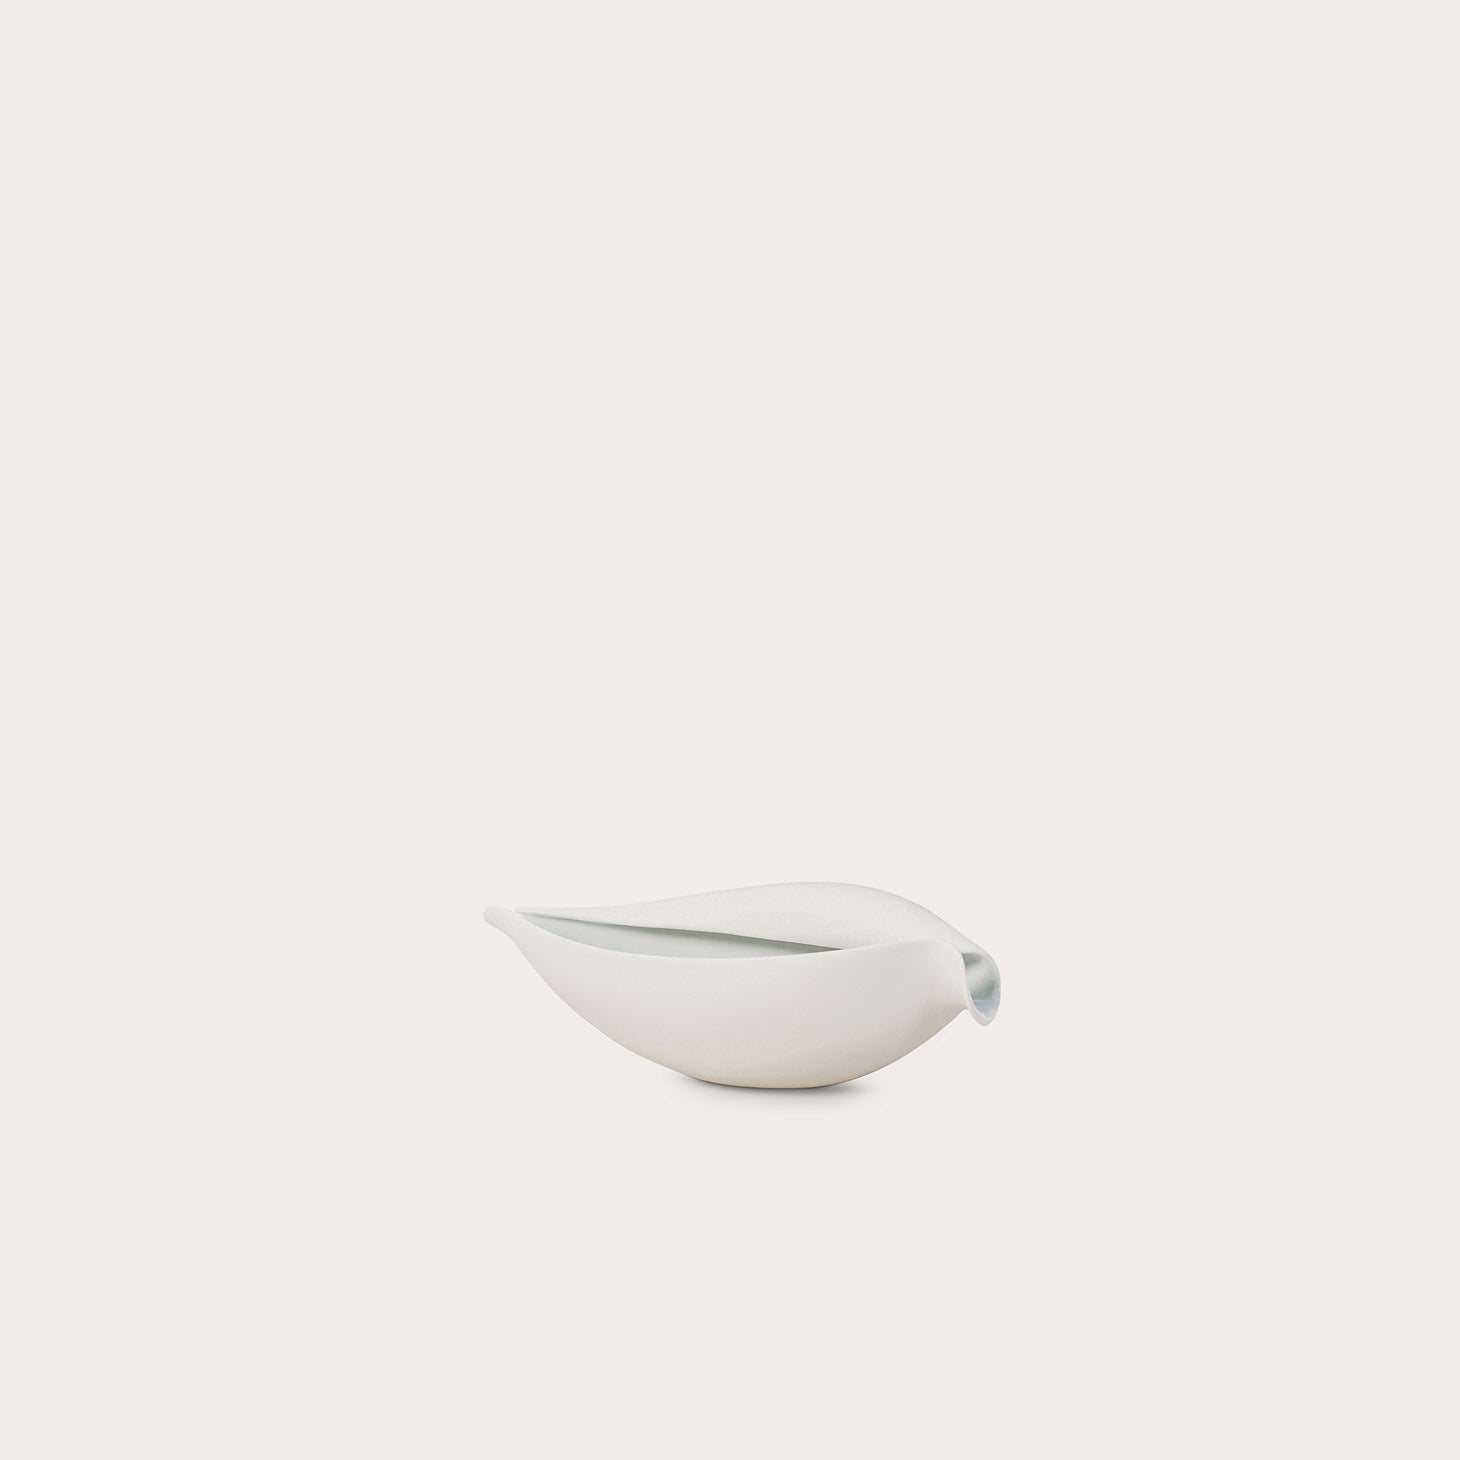 Volute Bowl Accessories Ted Muehling Designer Furniture Sku: 542-100-10007